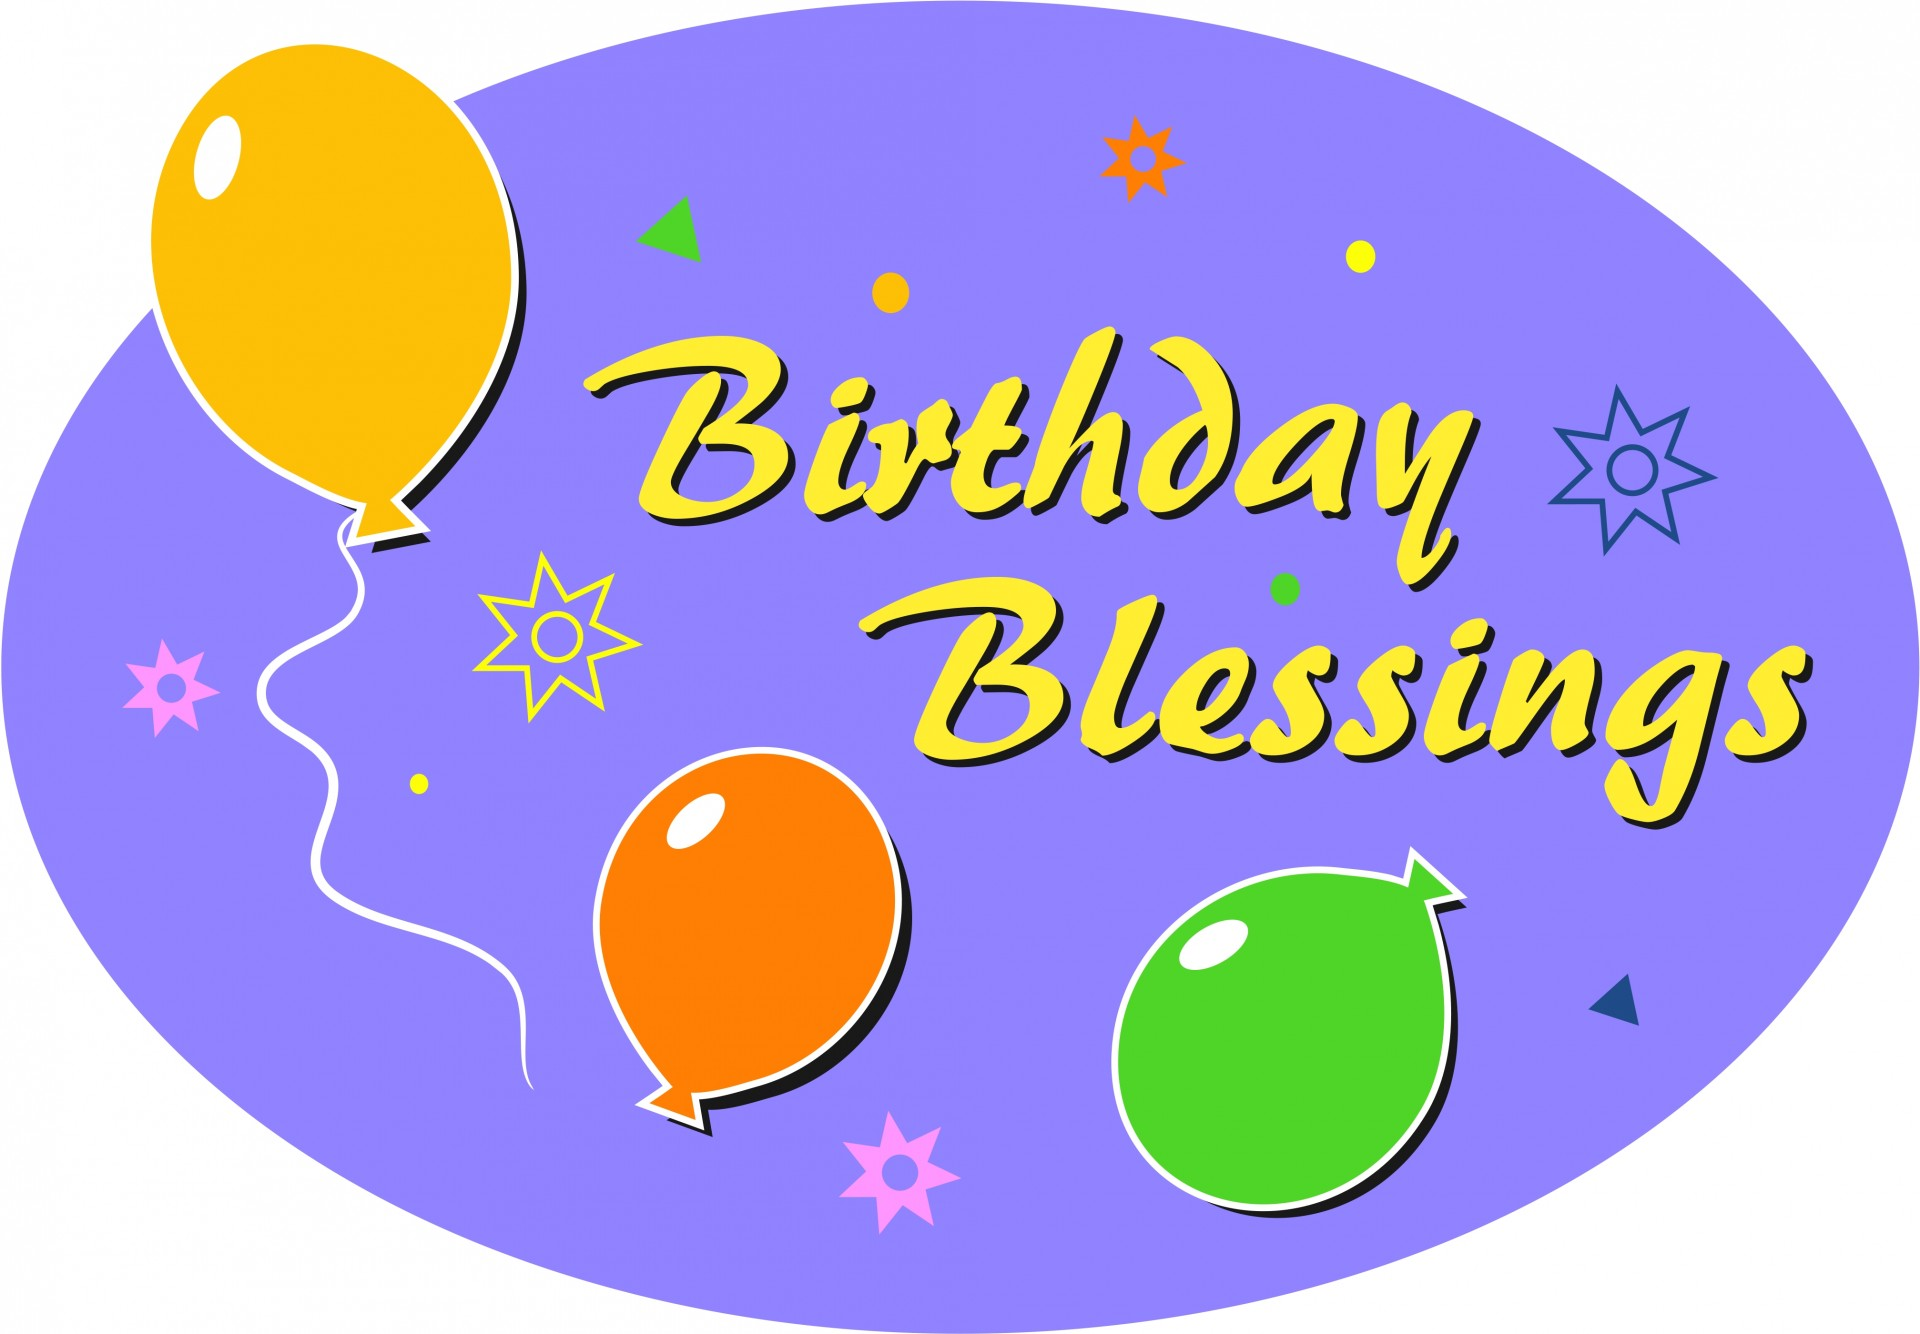 1920x1334 Birthday Blessings Clip Art Free Stock Photo